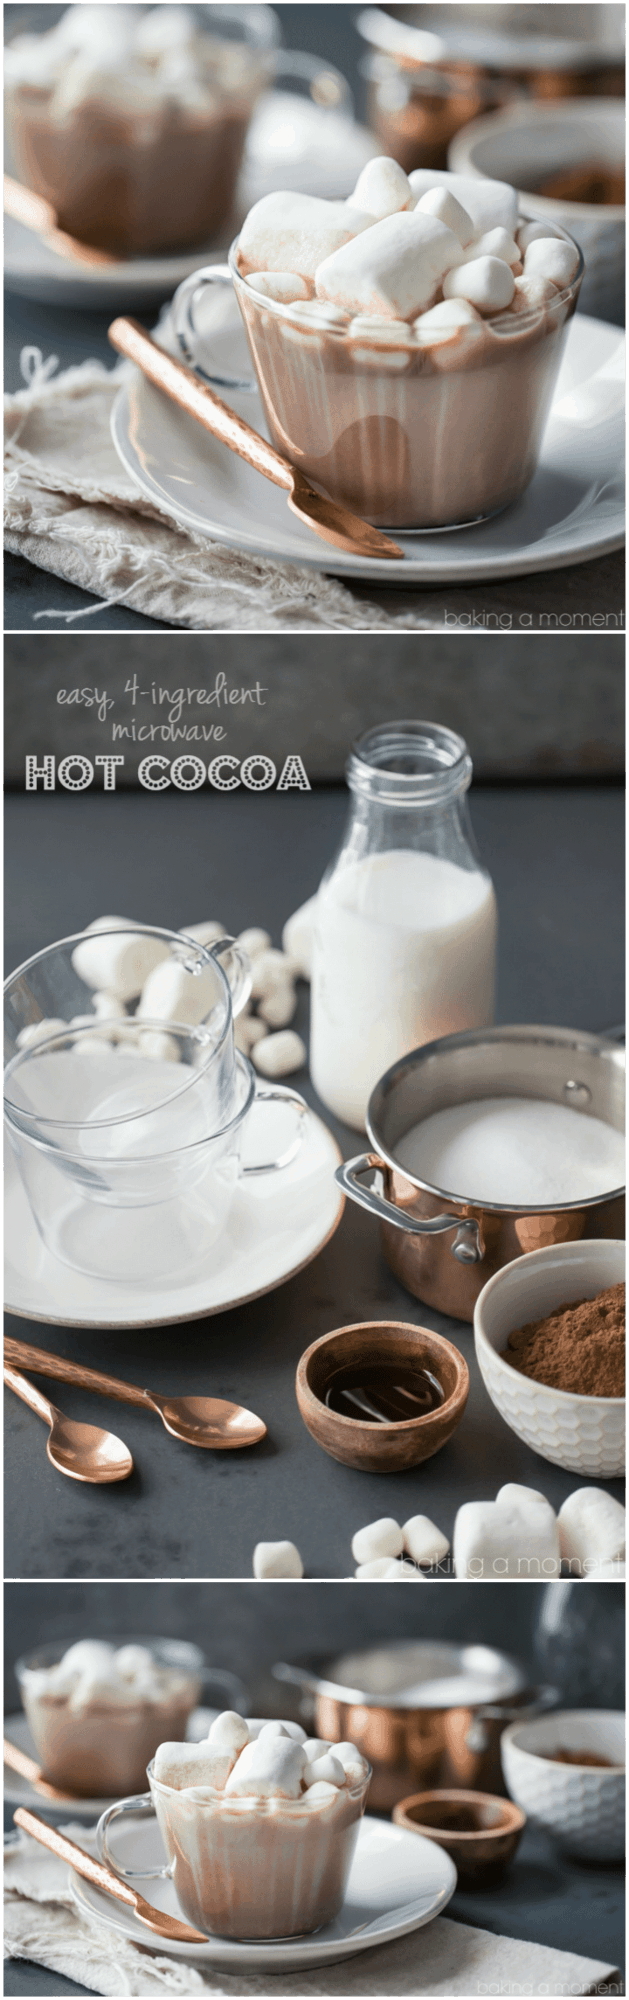 Best tasting hot cocoa ever, and so simple to make! I did this in my microwave- took just over a minute, and I had all the ingredients already on hand.